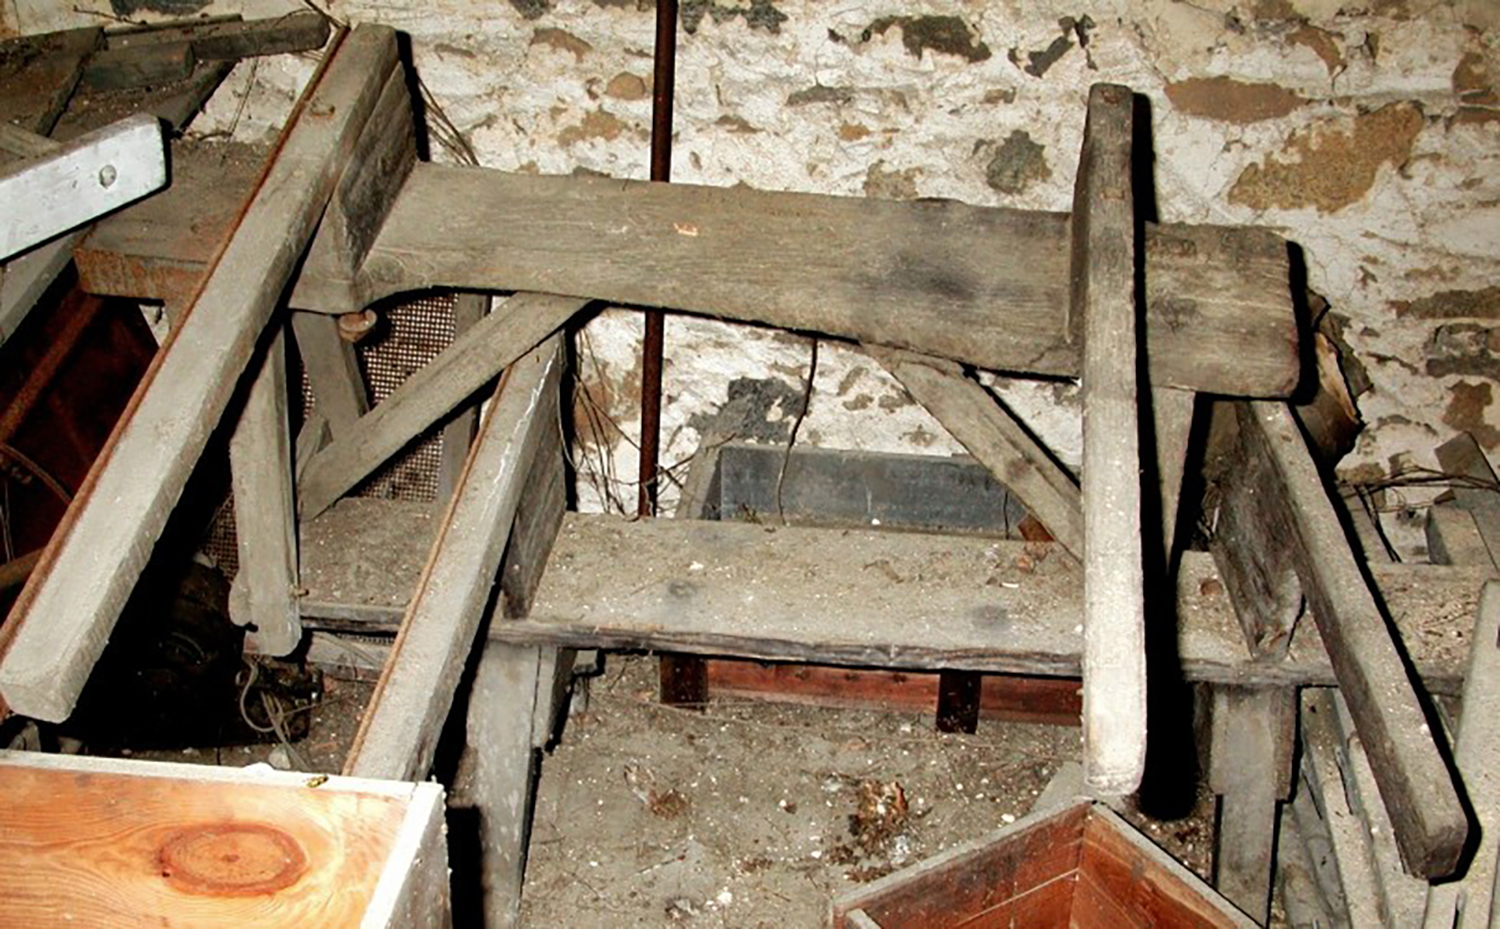 Figure 4: These glassblowing benches were discovered in an old barn on the Glencairn property.